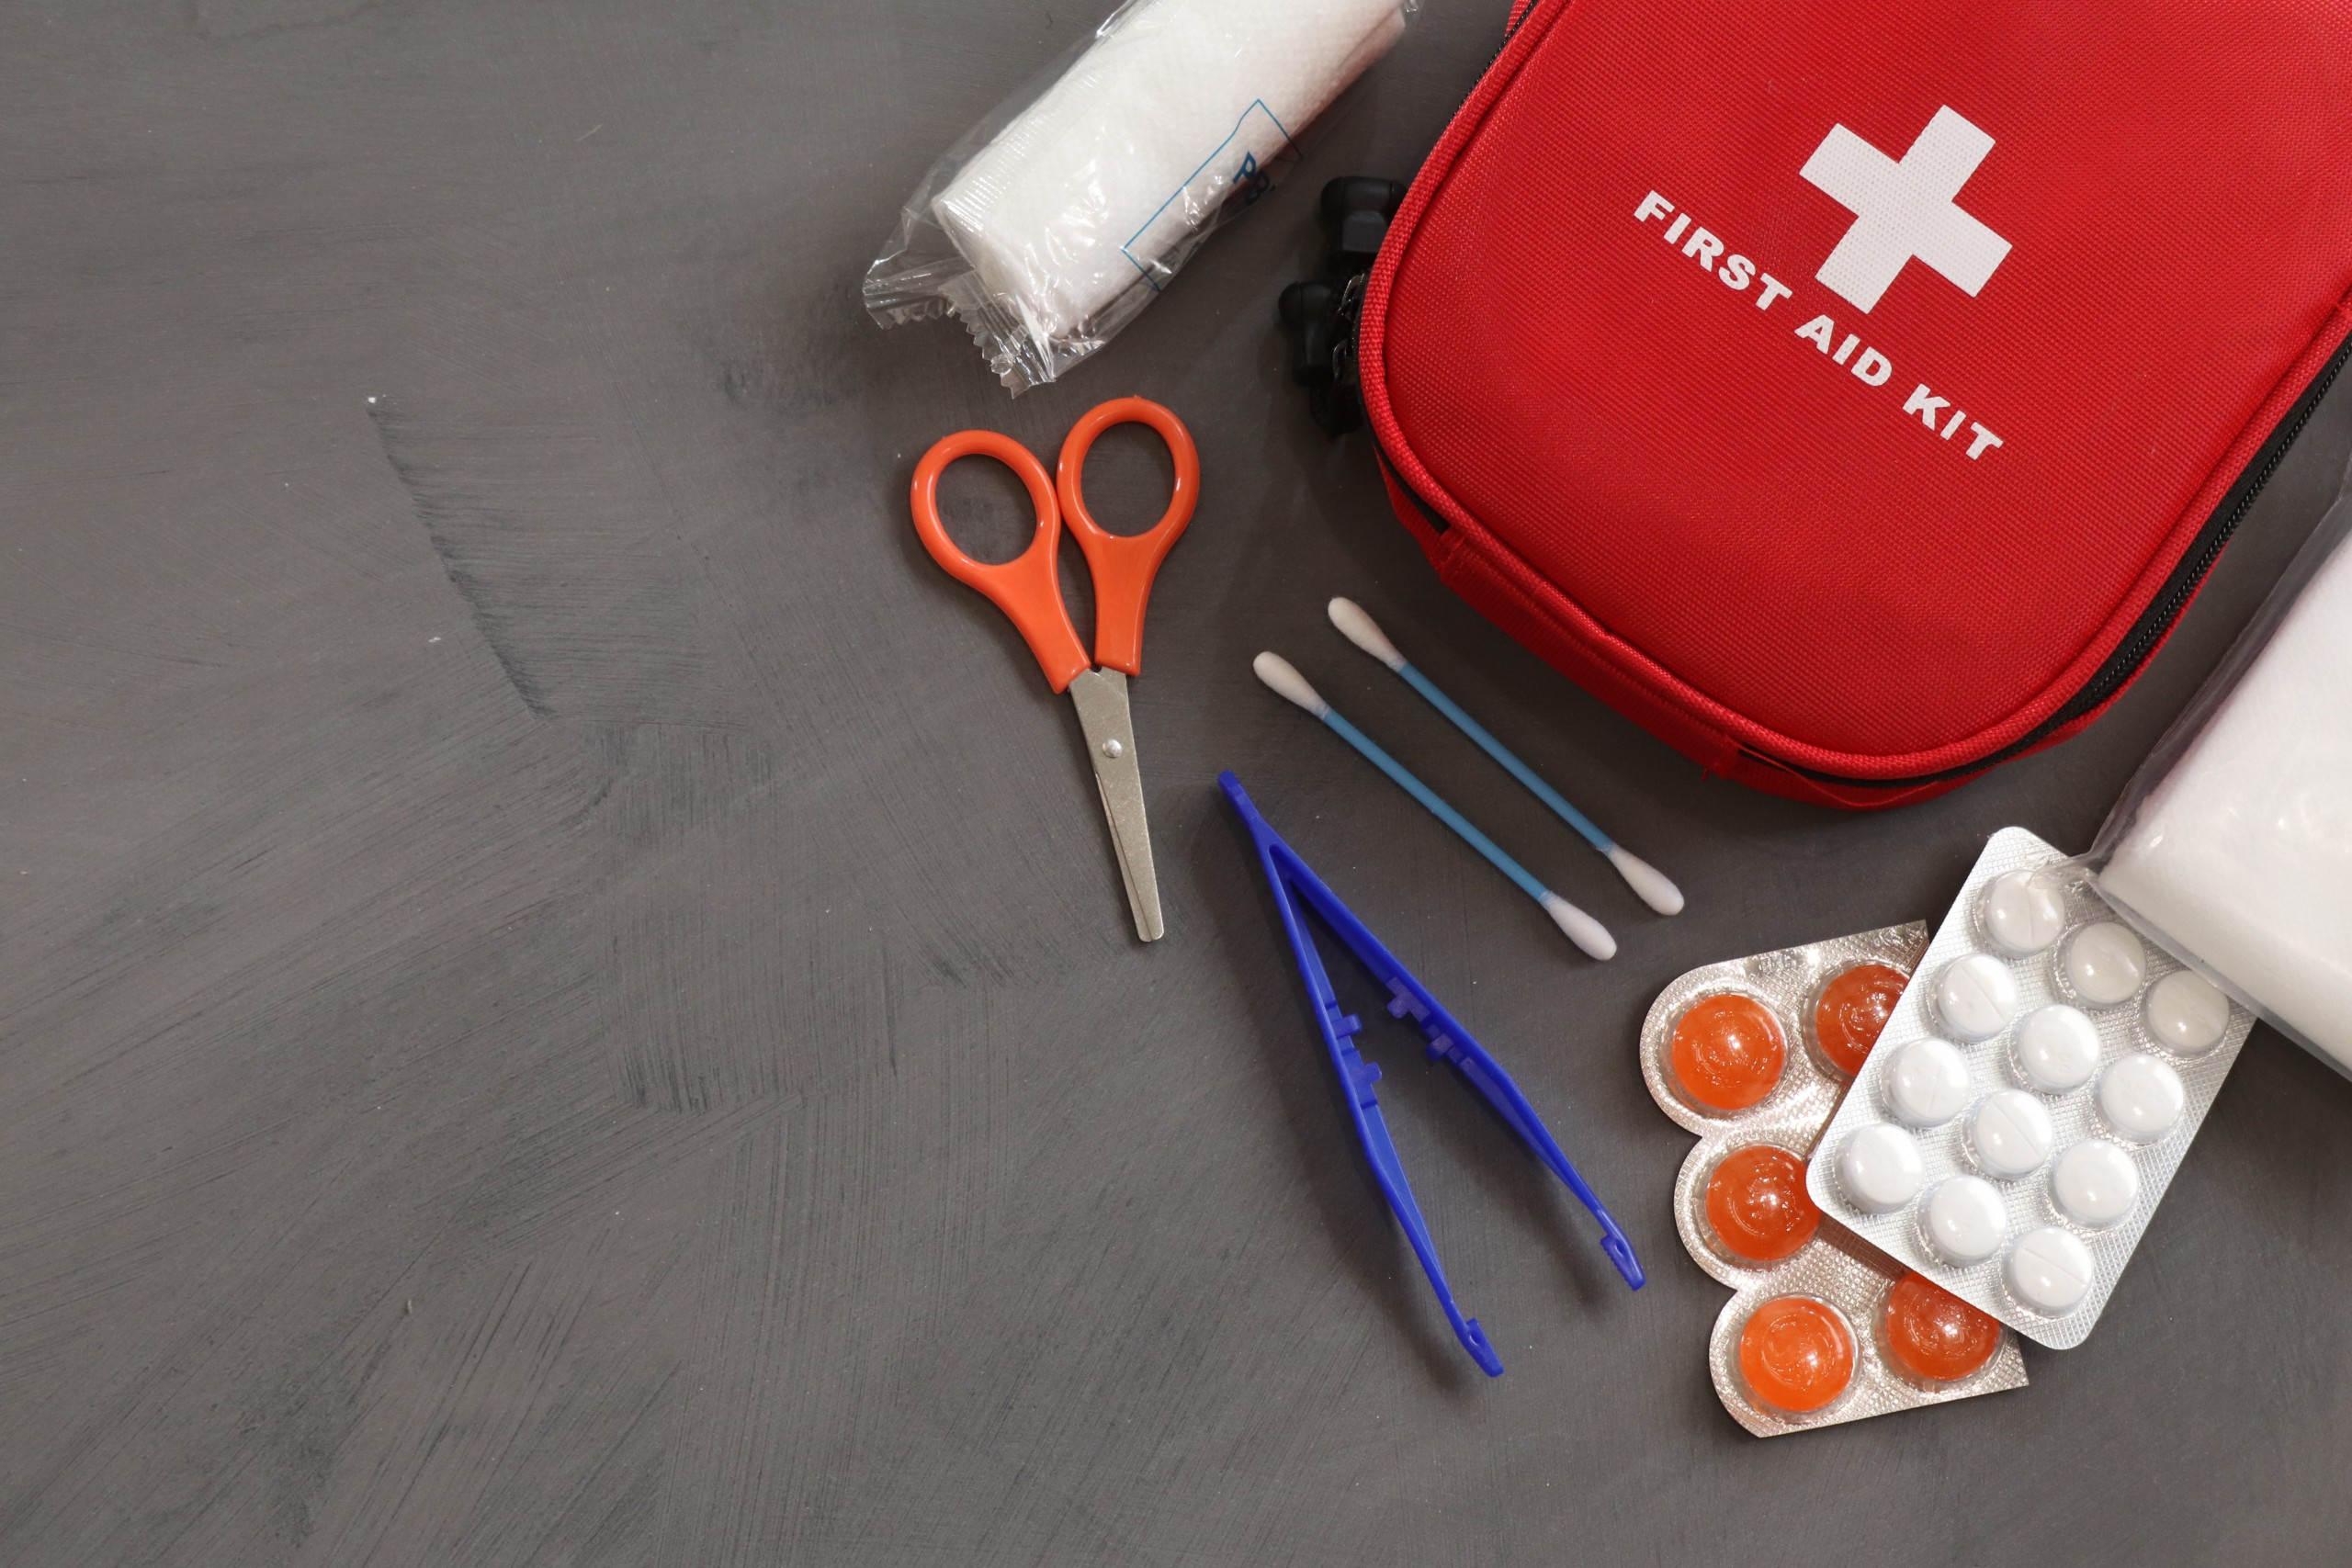 Secondary Care (First Aid)